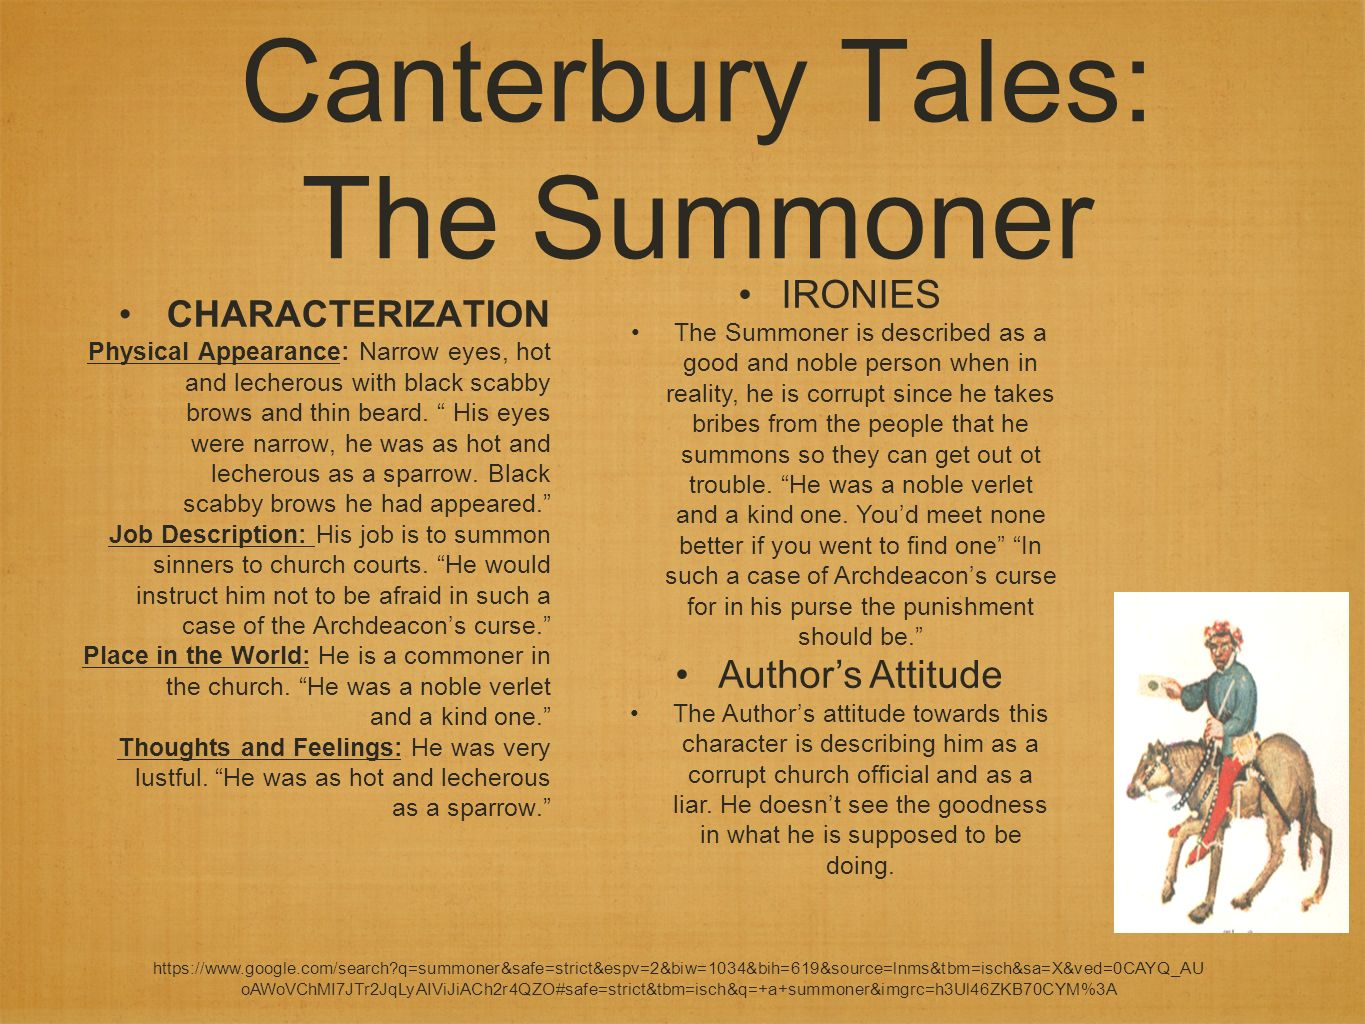 horse and rider archetypes in canterbury tales english literature essay Canterbury tales essaysthe canterbury tales by geoffrey chaucer is a poets and stories about gives modern readers a sense of the language at greek mythology, destiny and fortune's wheel in the canterbury talesthe canterbury tales, written by geoffry chaucer, are pieces of literature that.